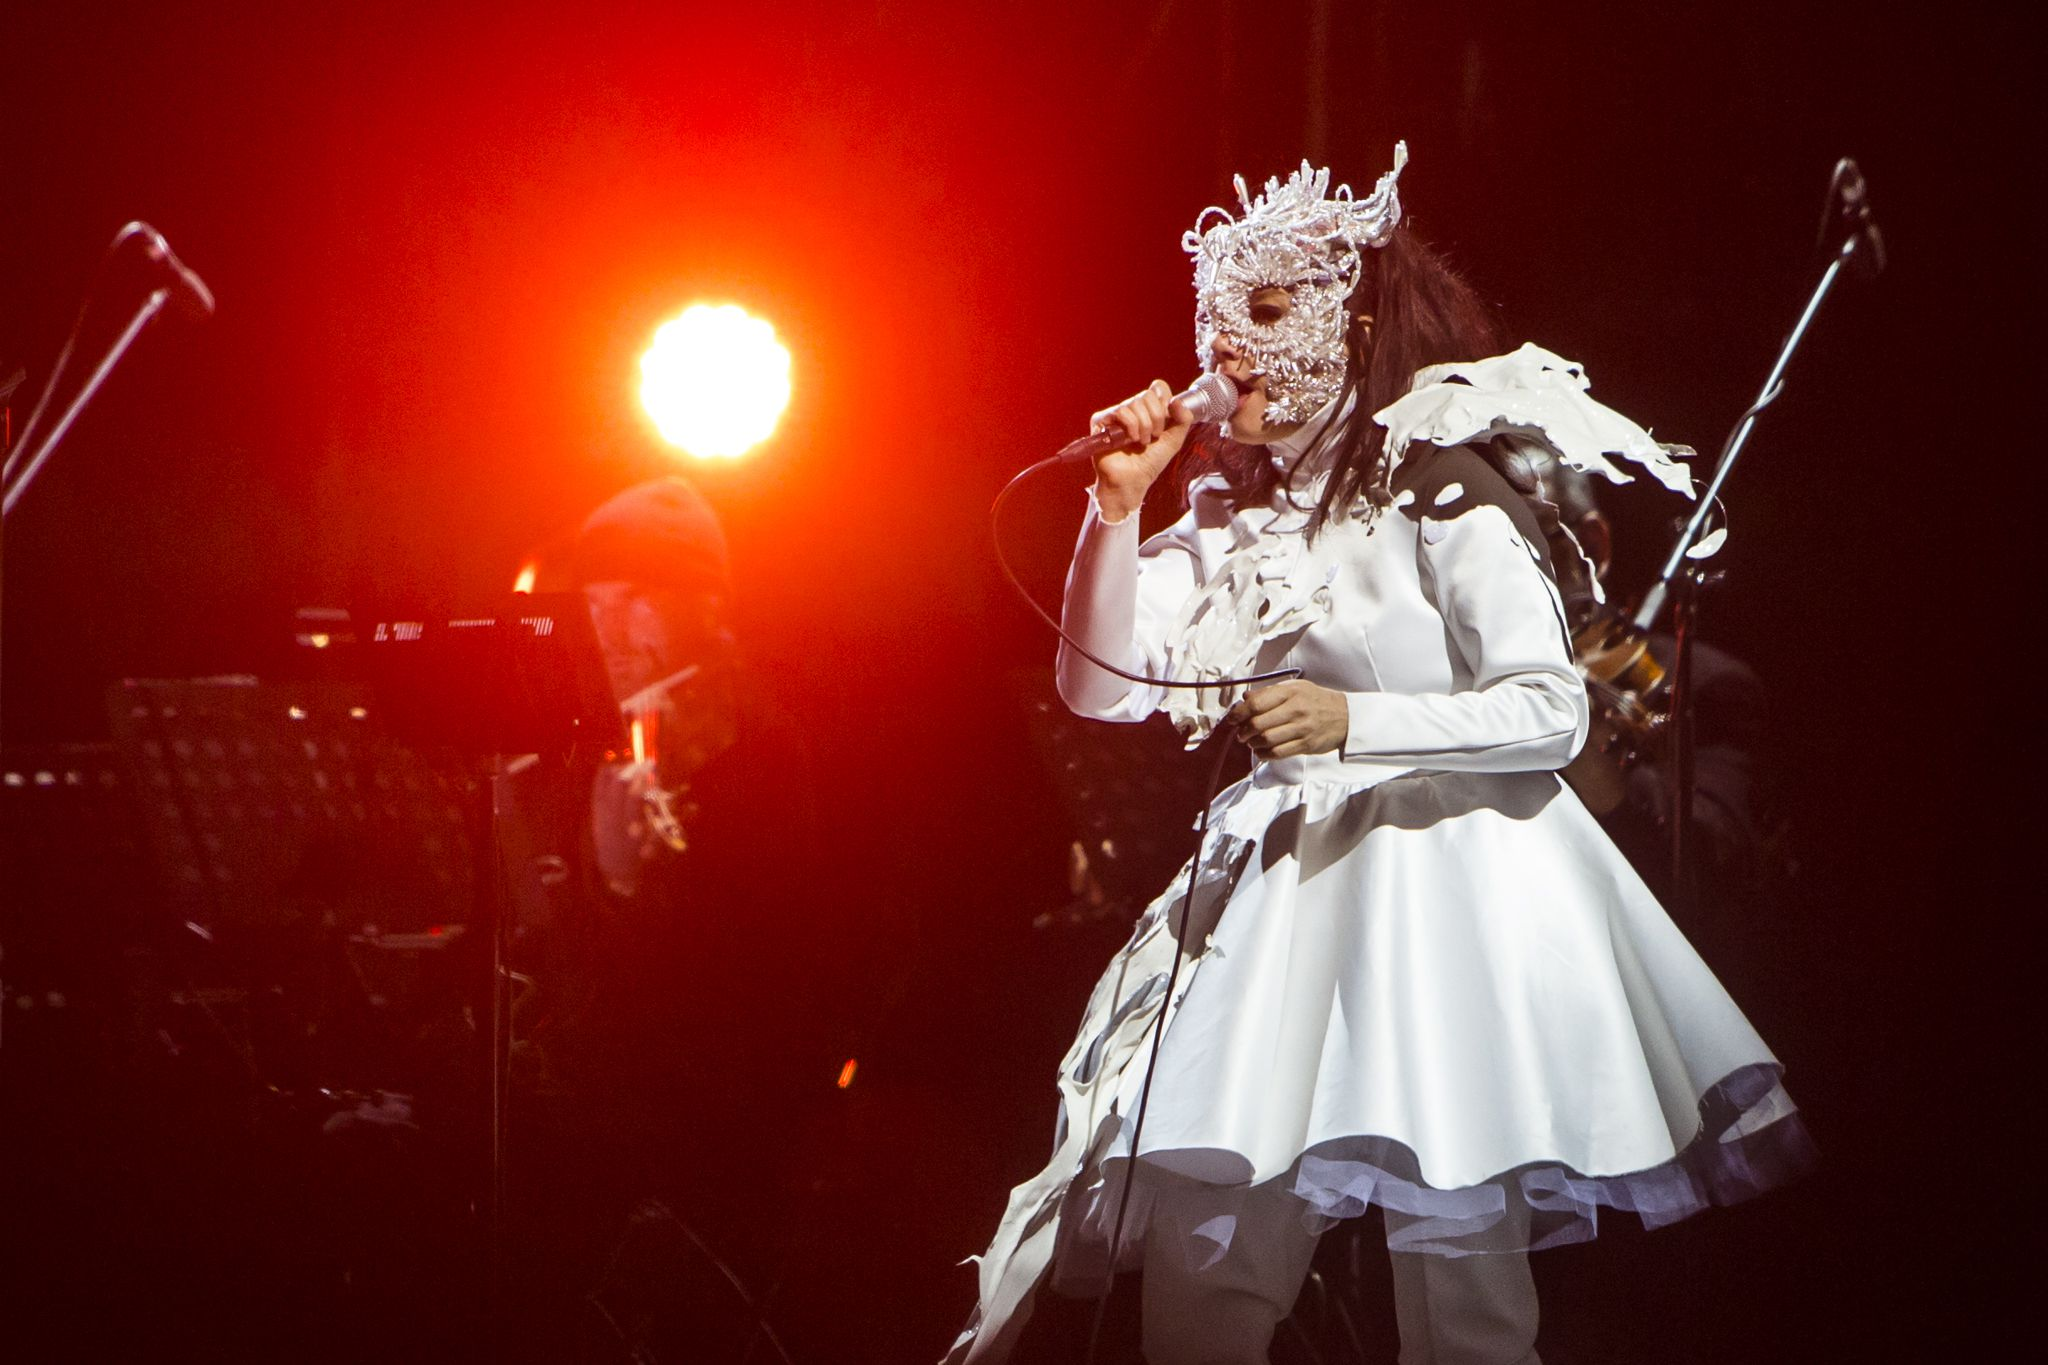 bjork 3 Ceremonia Festival 2017 Review and Photo Gallery